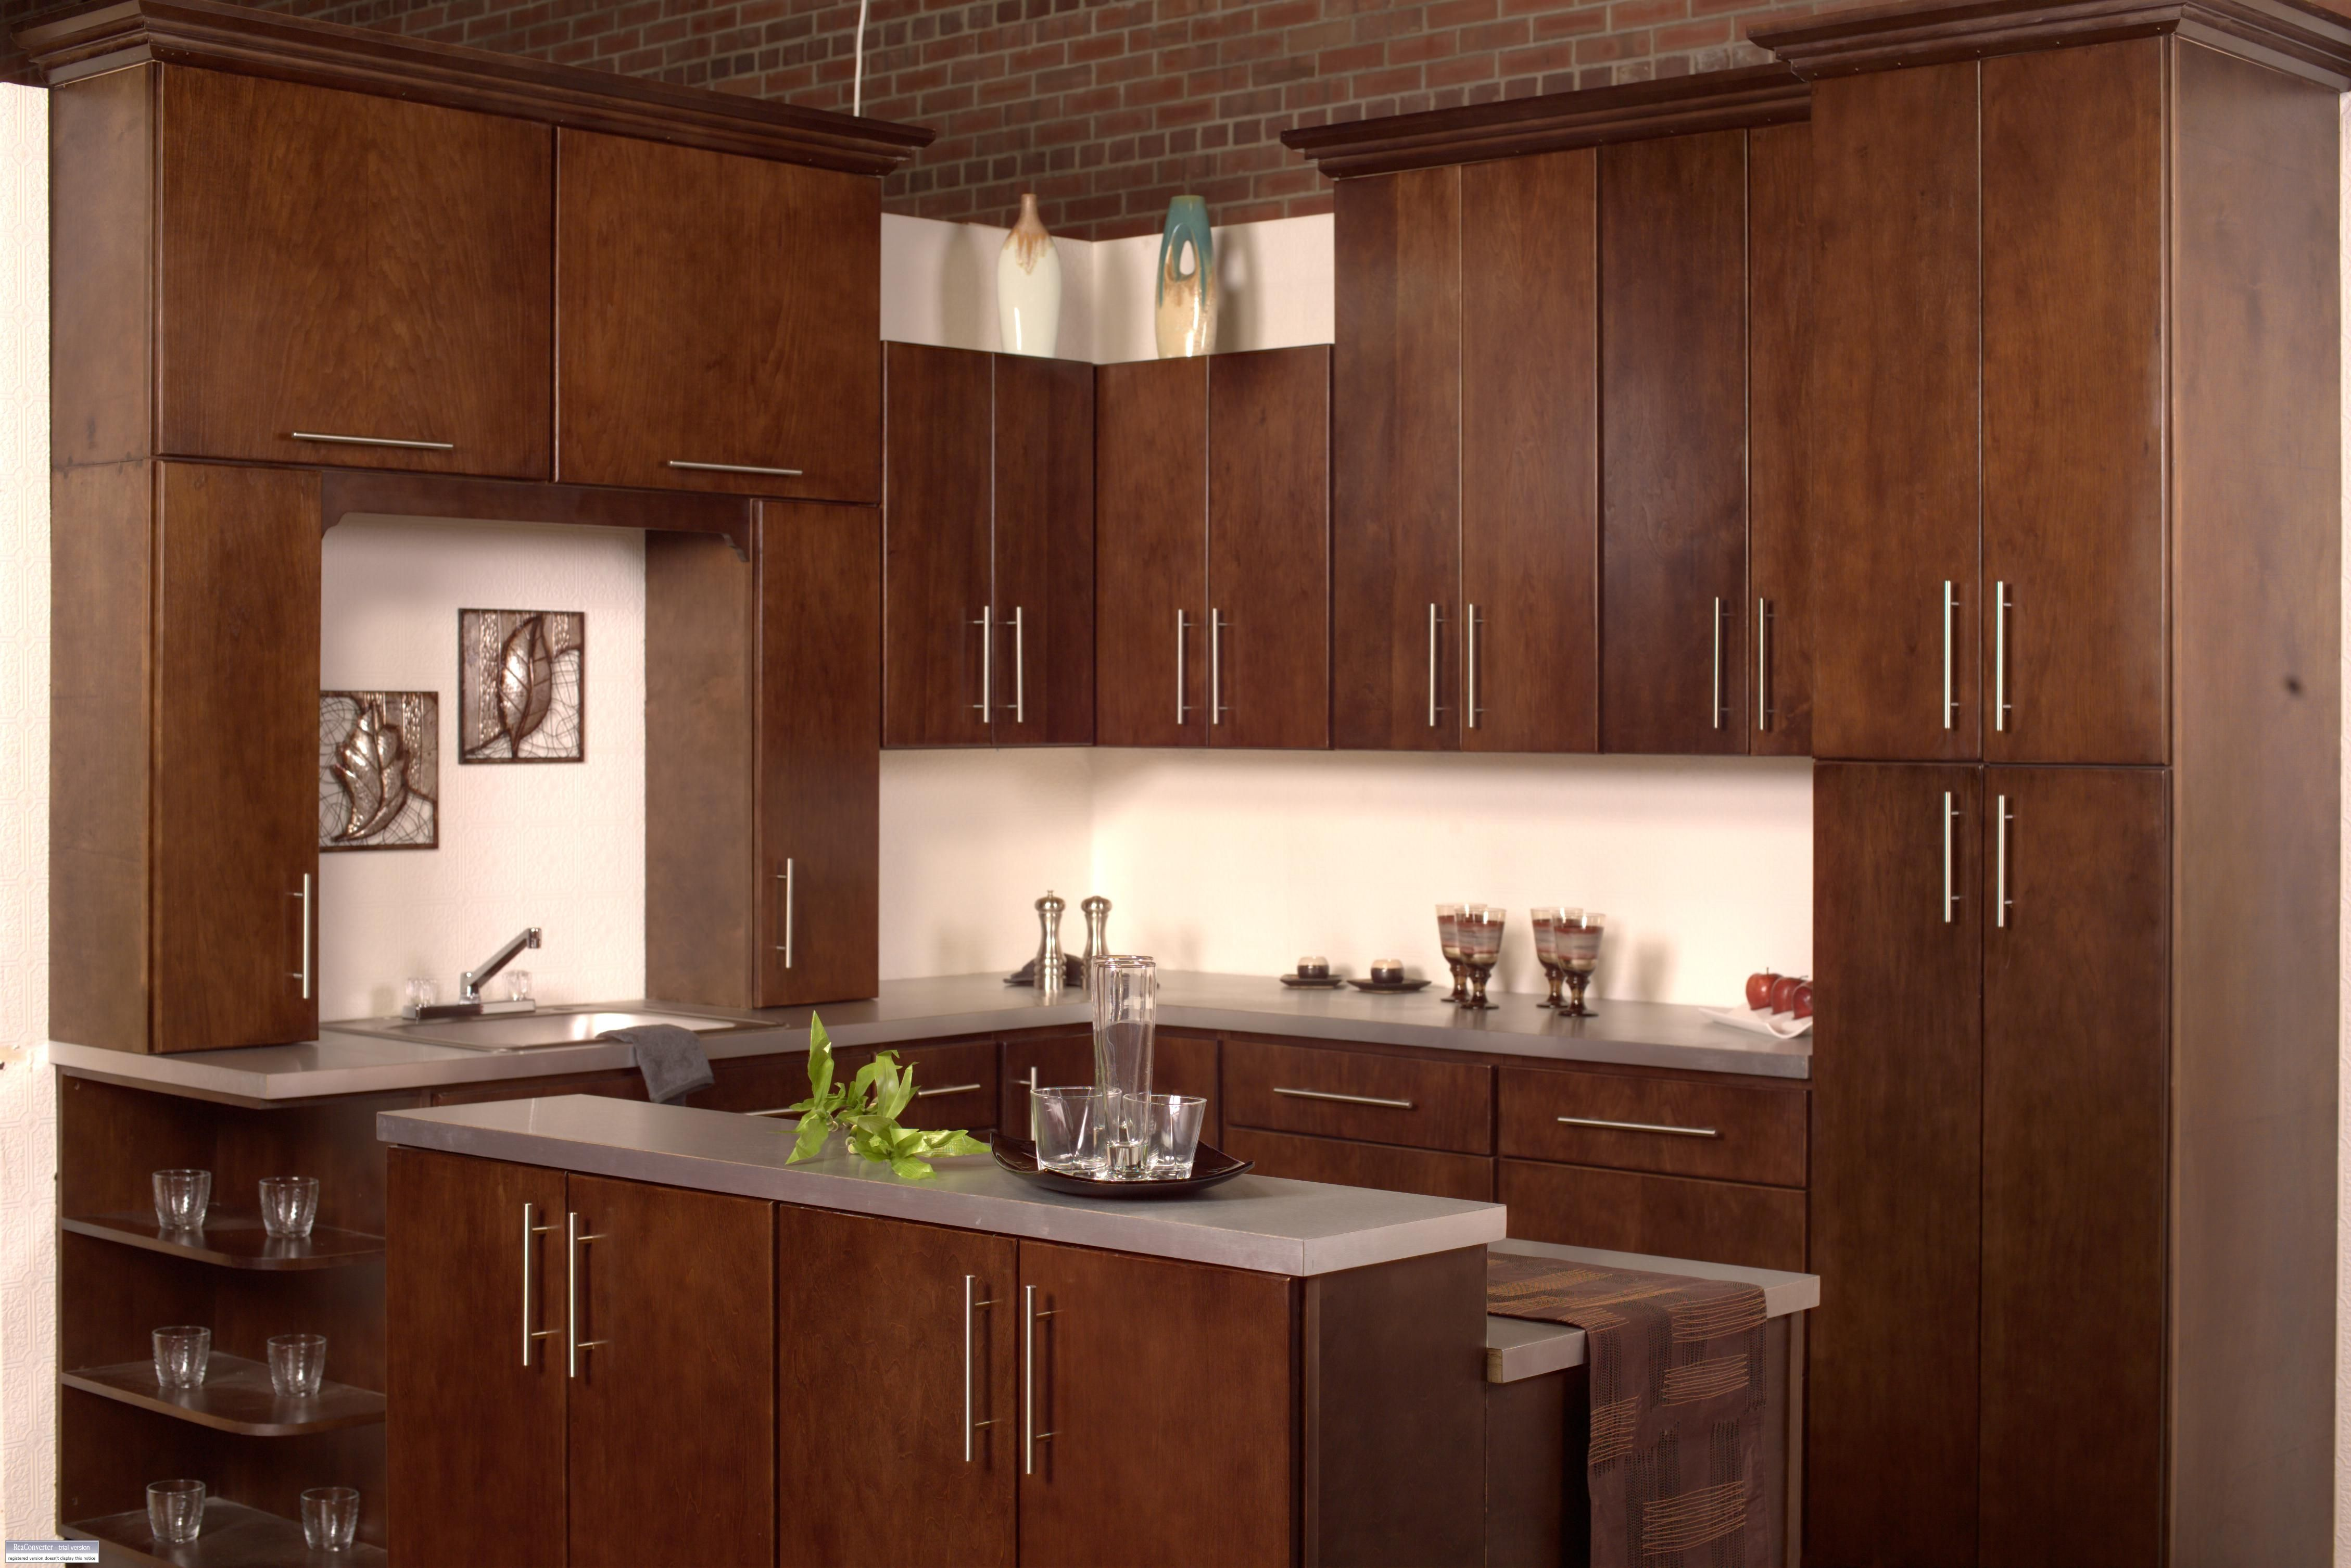 Cherry Kitchen Cabinet Doors Slab Kitchen Cabinet Doors Bali Rta Cabinets Slab My